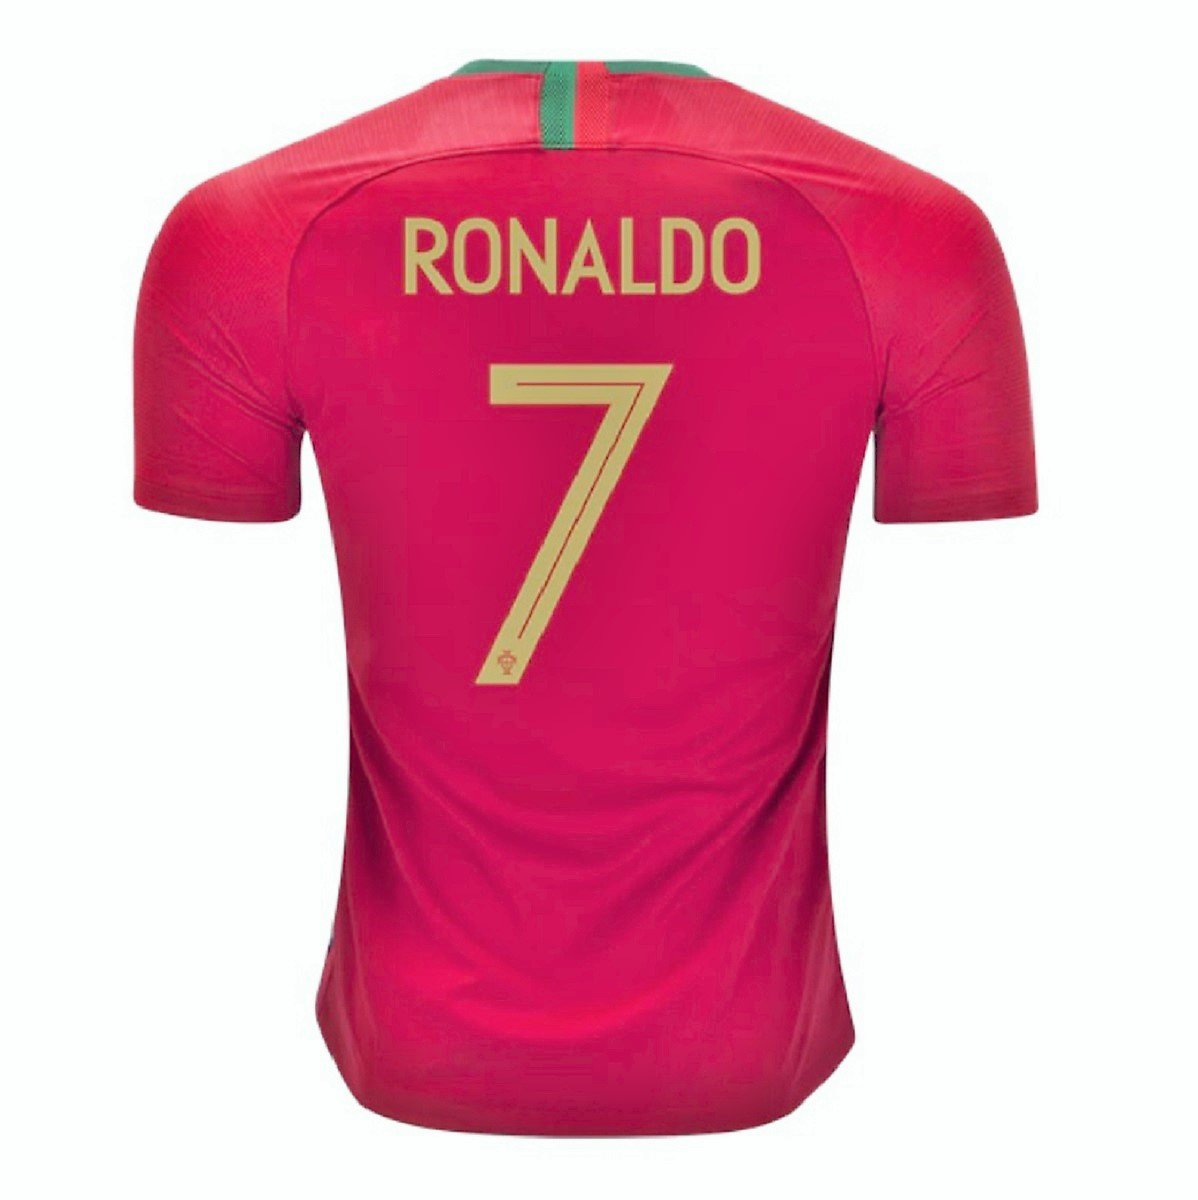 Portugal  7 Ronaldo FIFA Home jersey w shorts kid youth for age 10-12 e621d0517